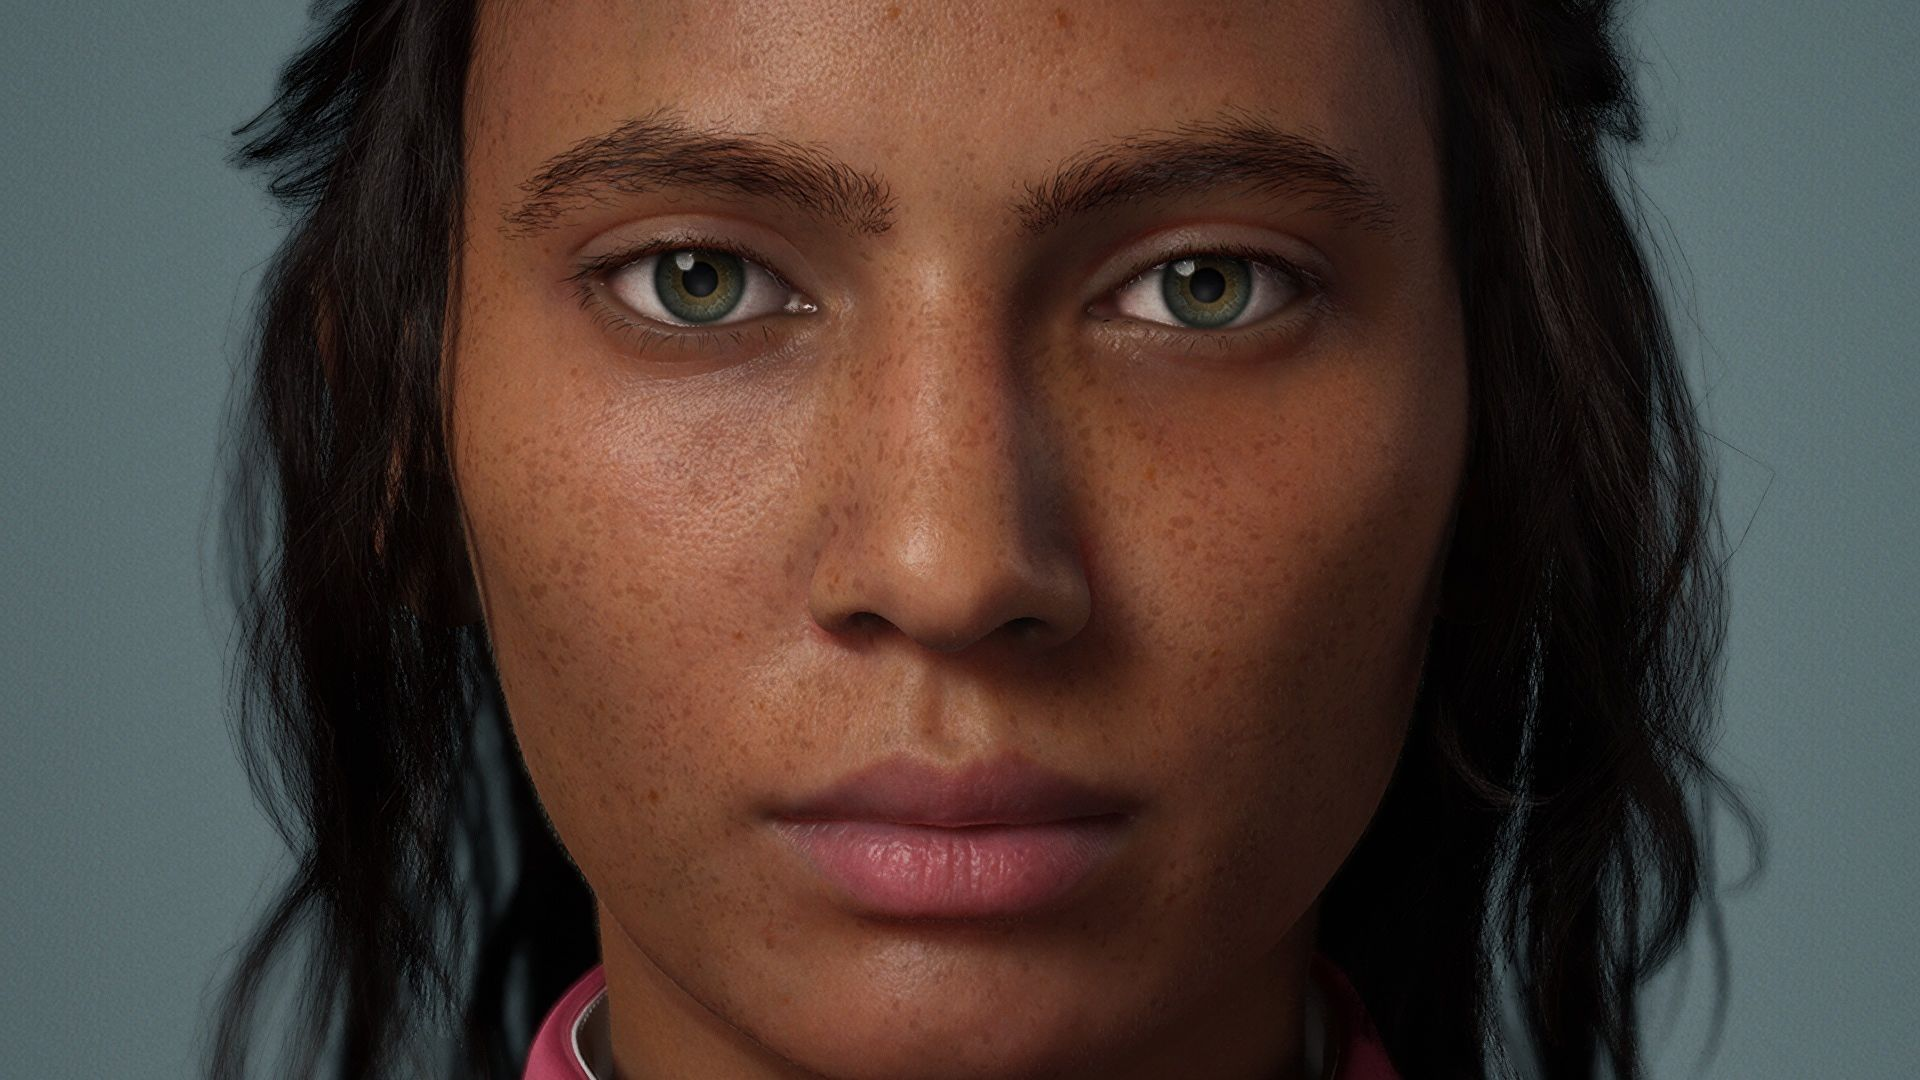 Epic's tool for creating human faces is out in early access now